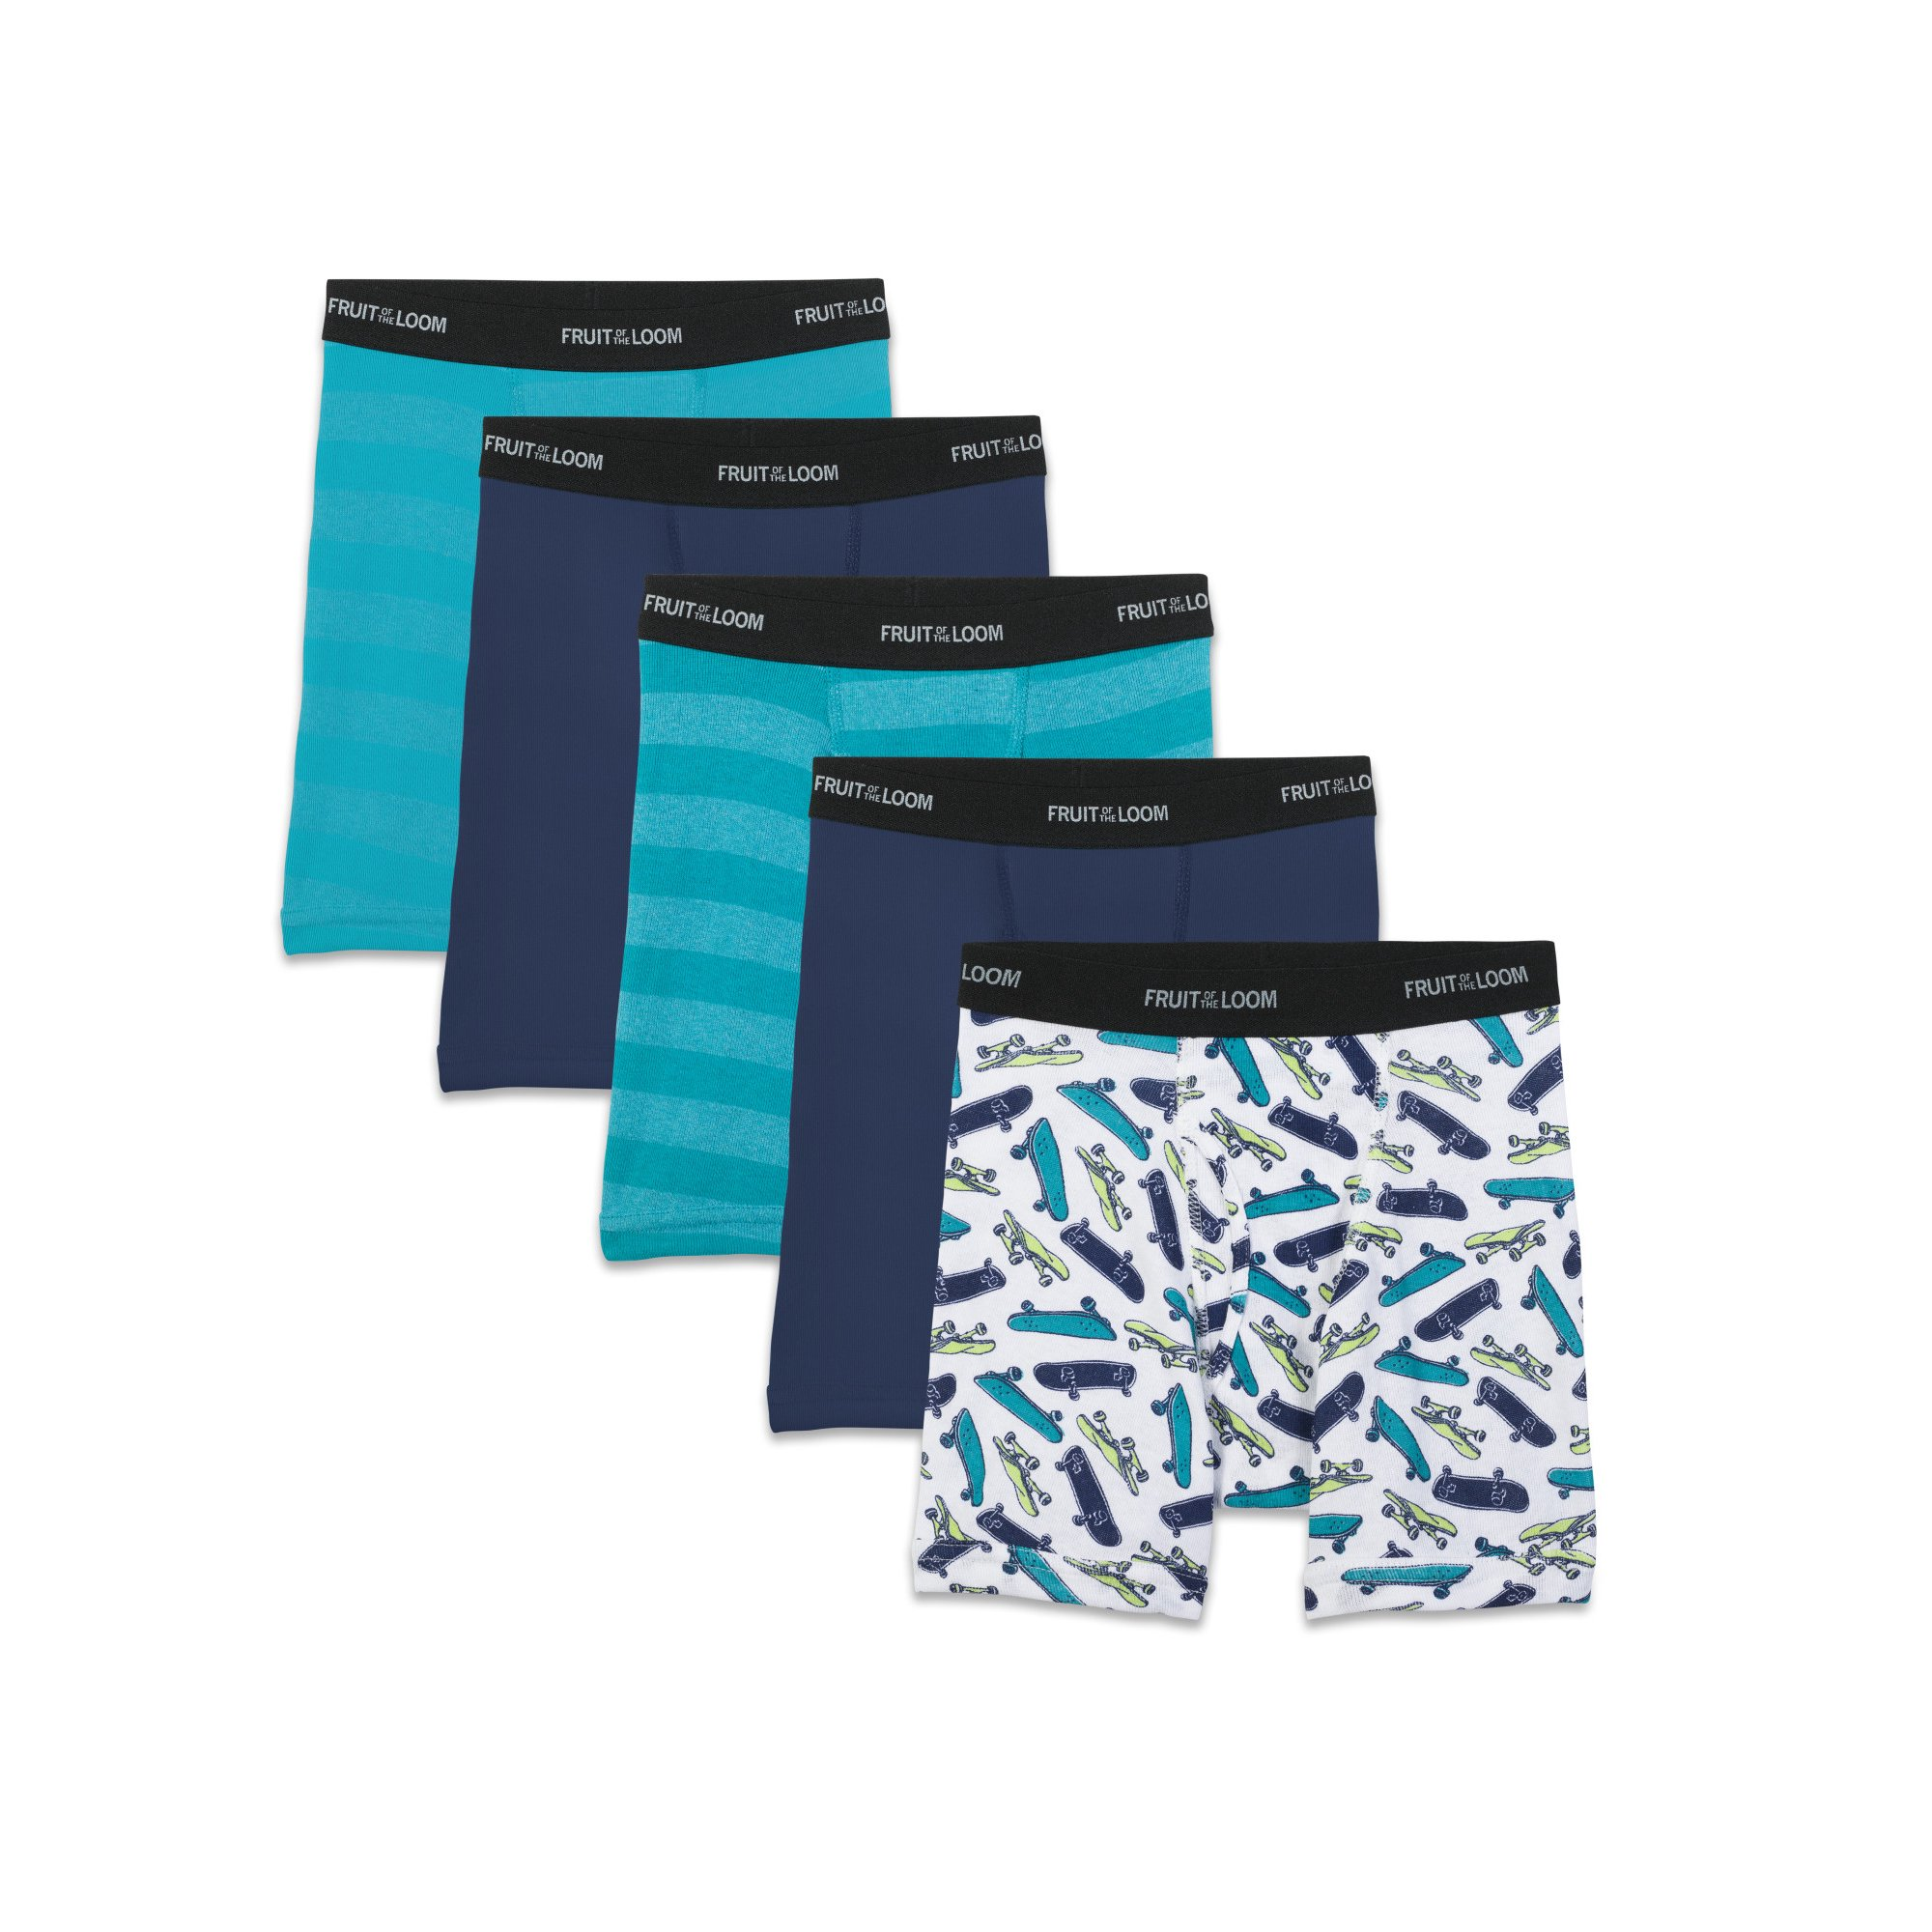 82f2bf731c00 Buy Boys' Sport Style Boxer Briefs, 5 Pack | Cheapest Fruit of the ...